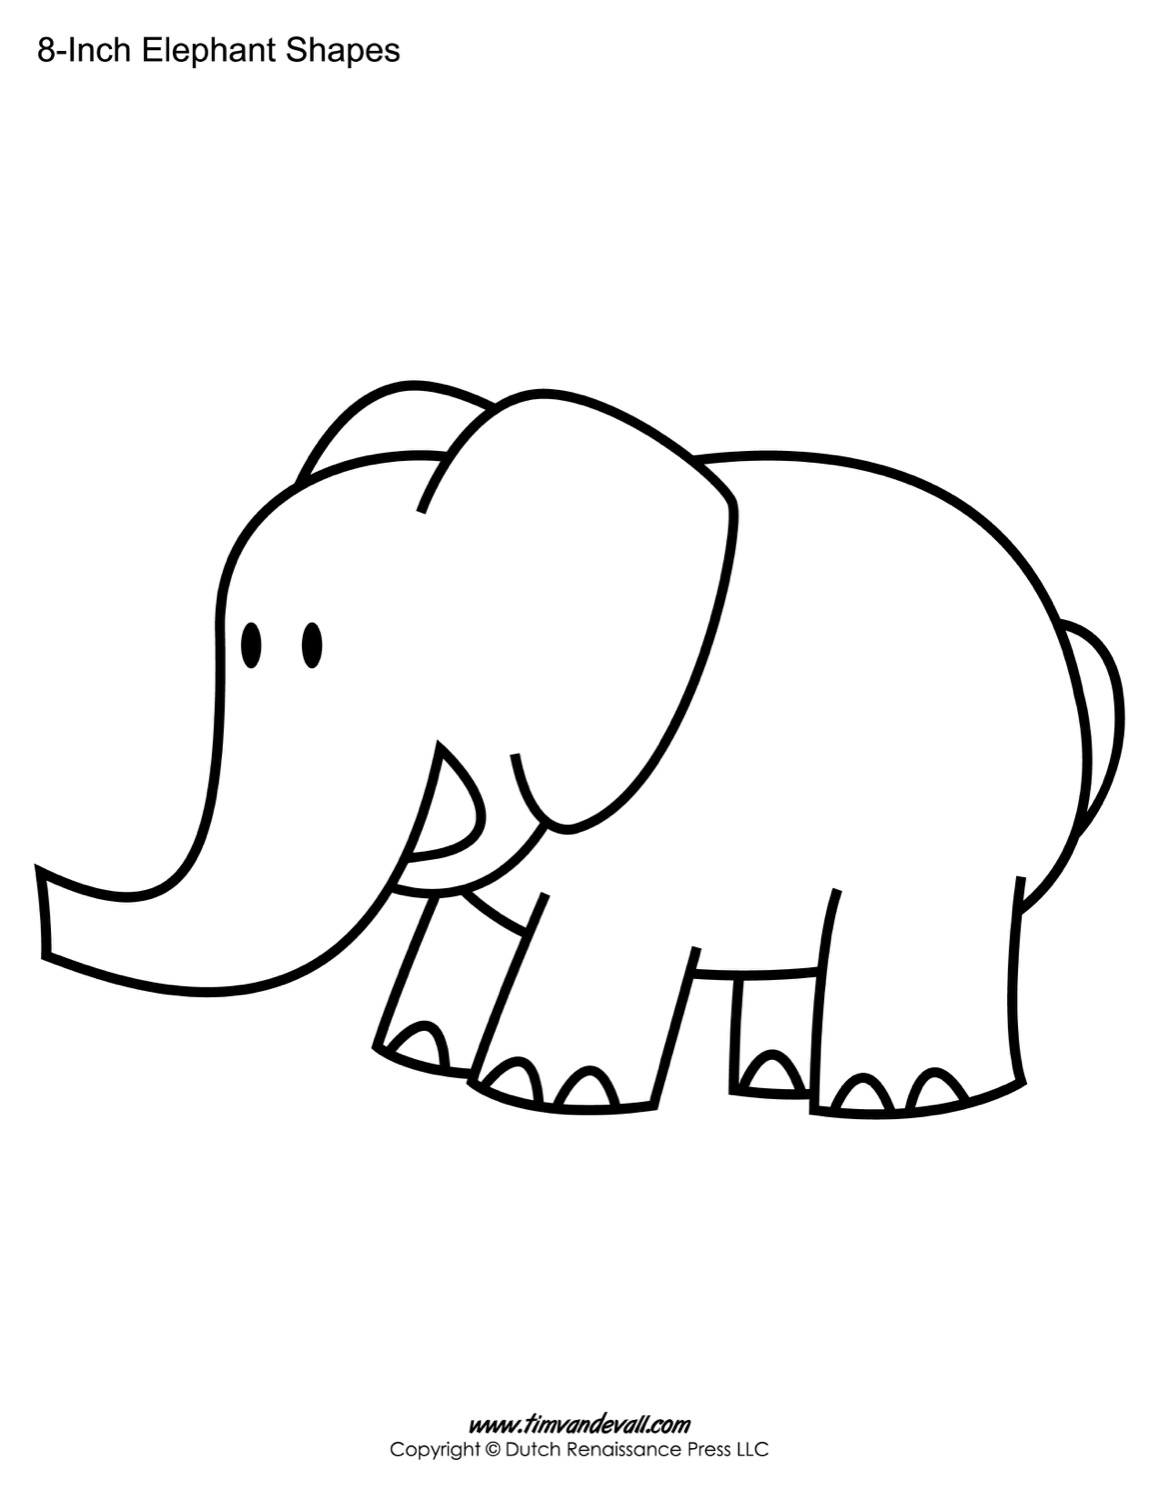 Printable Elephant Templates / Elephant Shapes for Kids